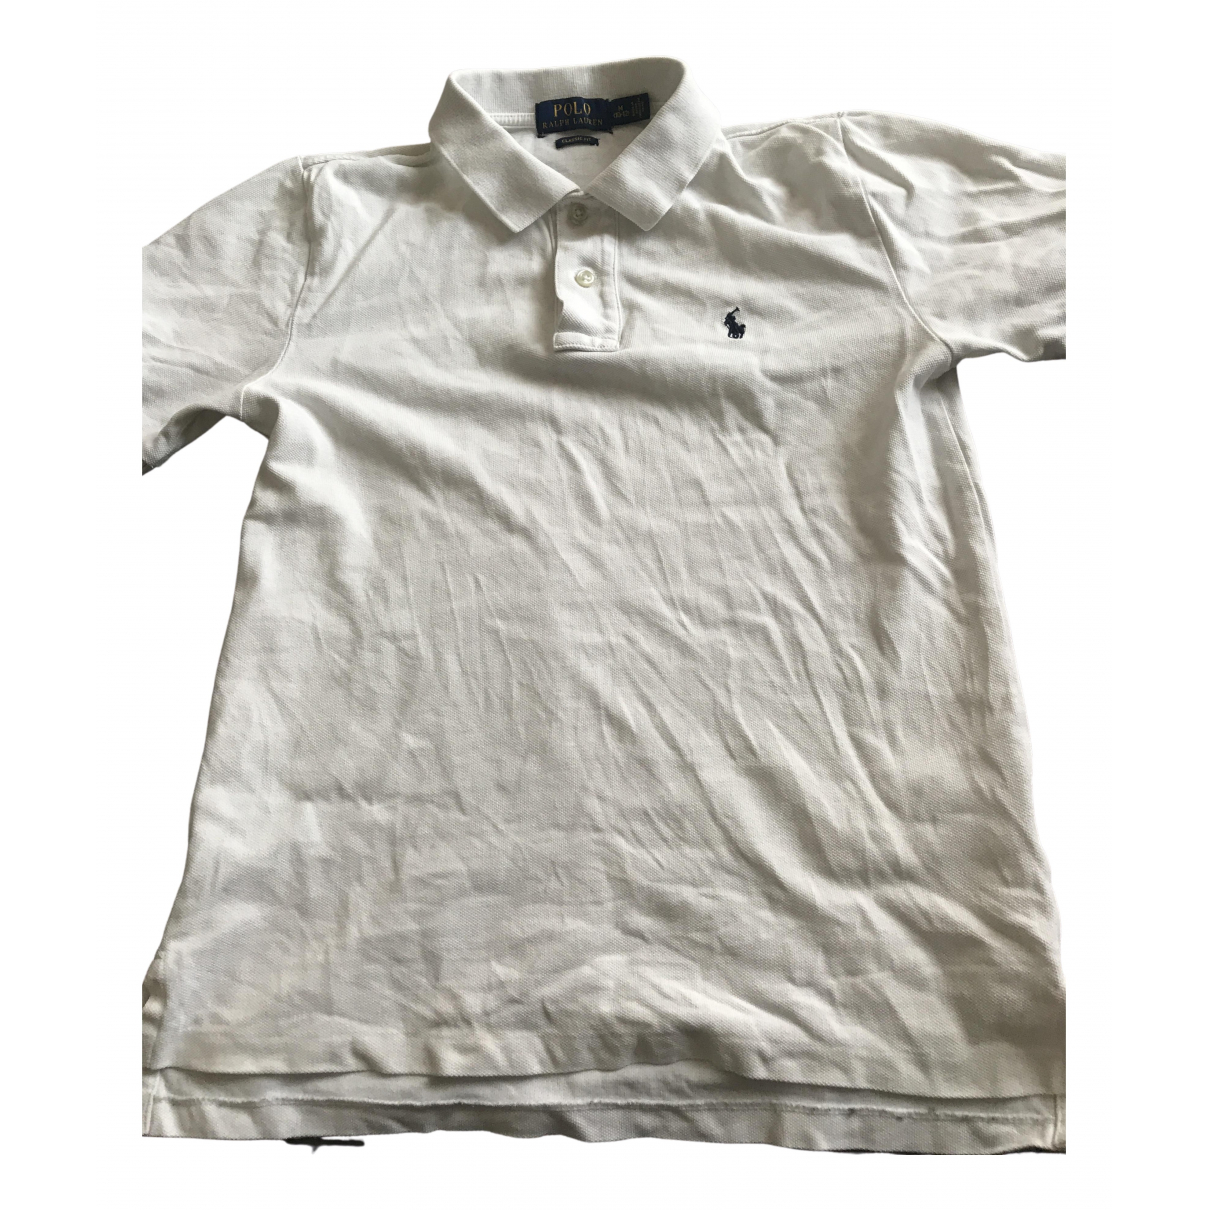 Polo Ralph Lauren Polo classique manches courtes Poloshirts in  Weiss Baumwolle